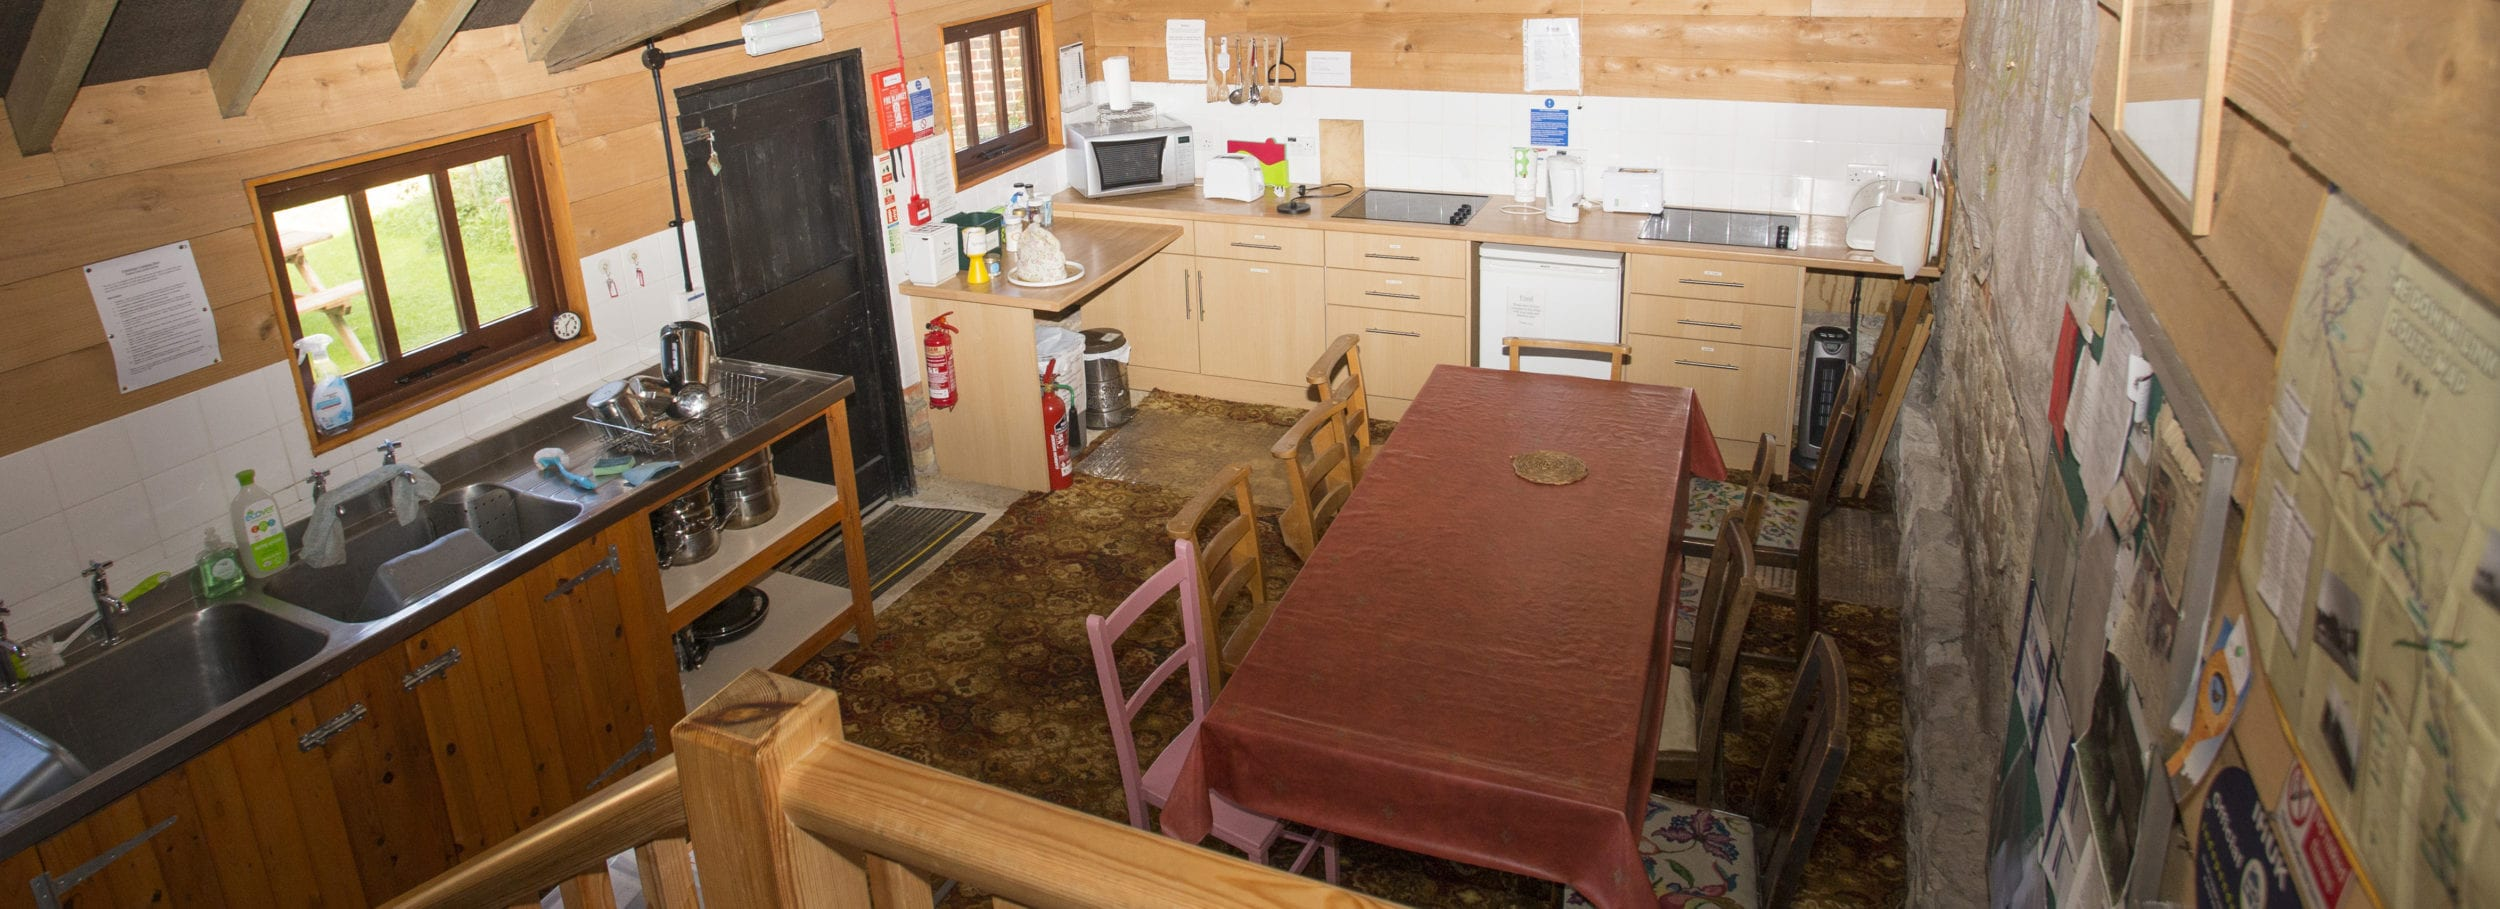 Kitchen and dining area at Puttenham Camping Barn on the North Downs Way. Perfect for D of E groups